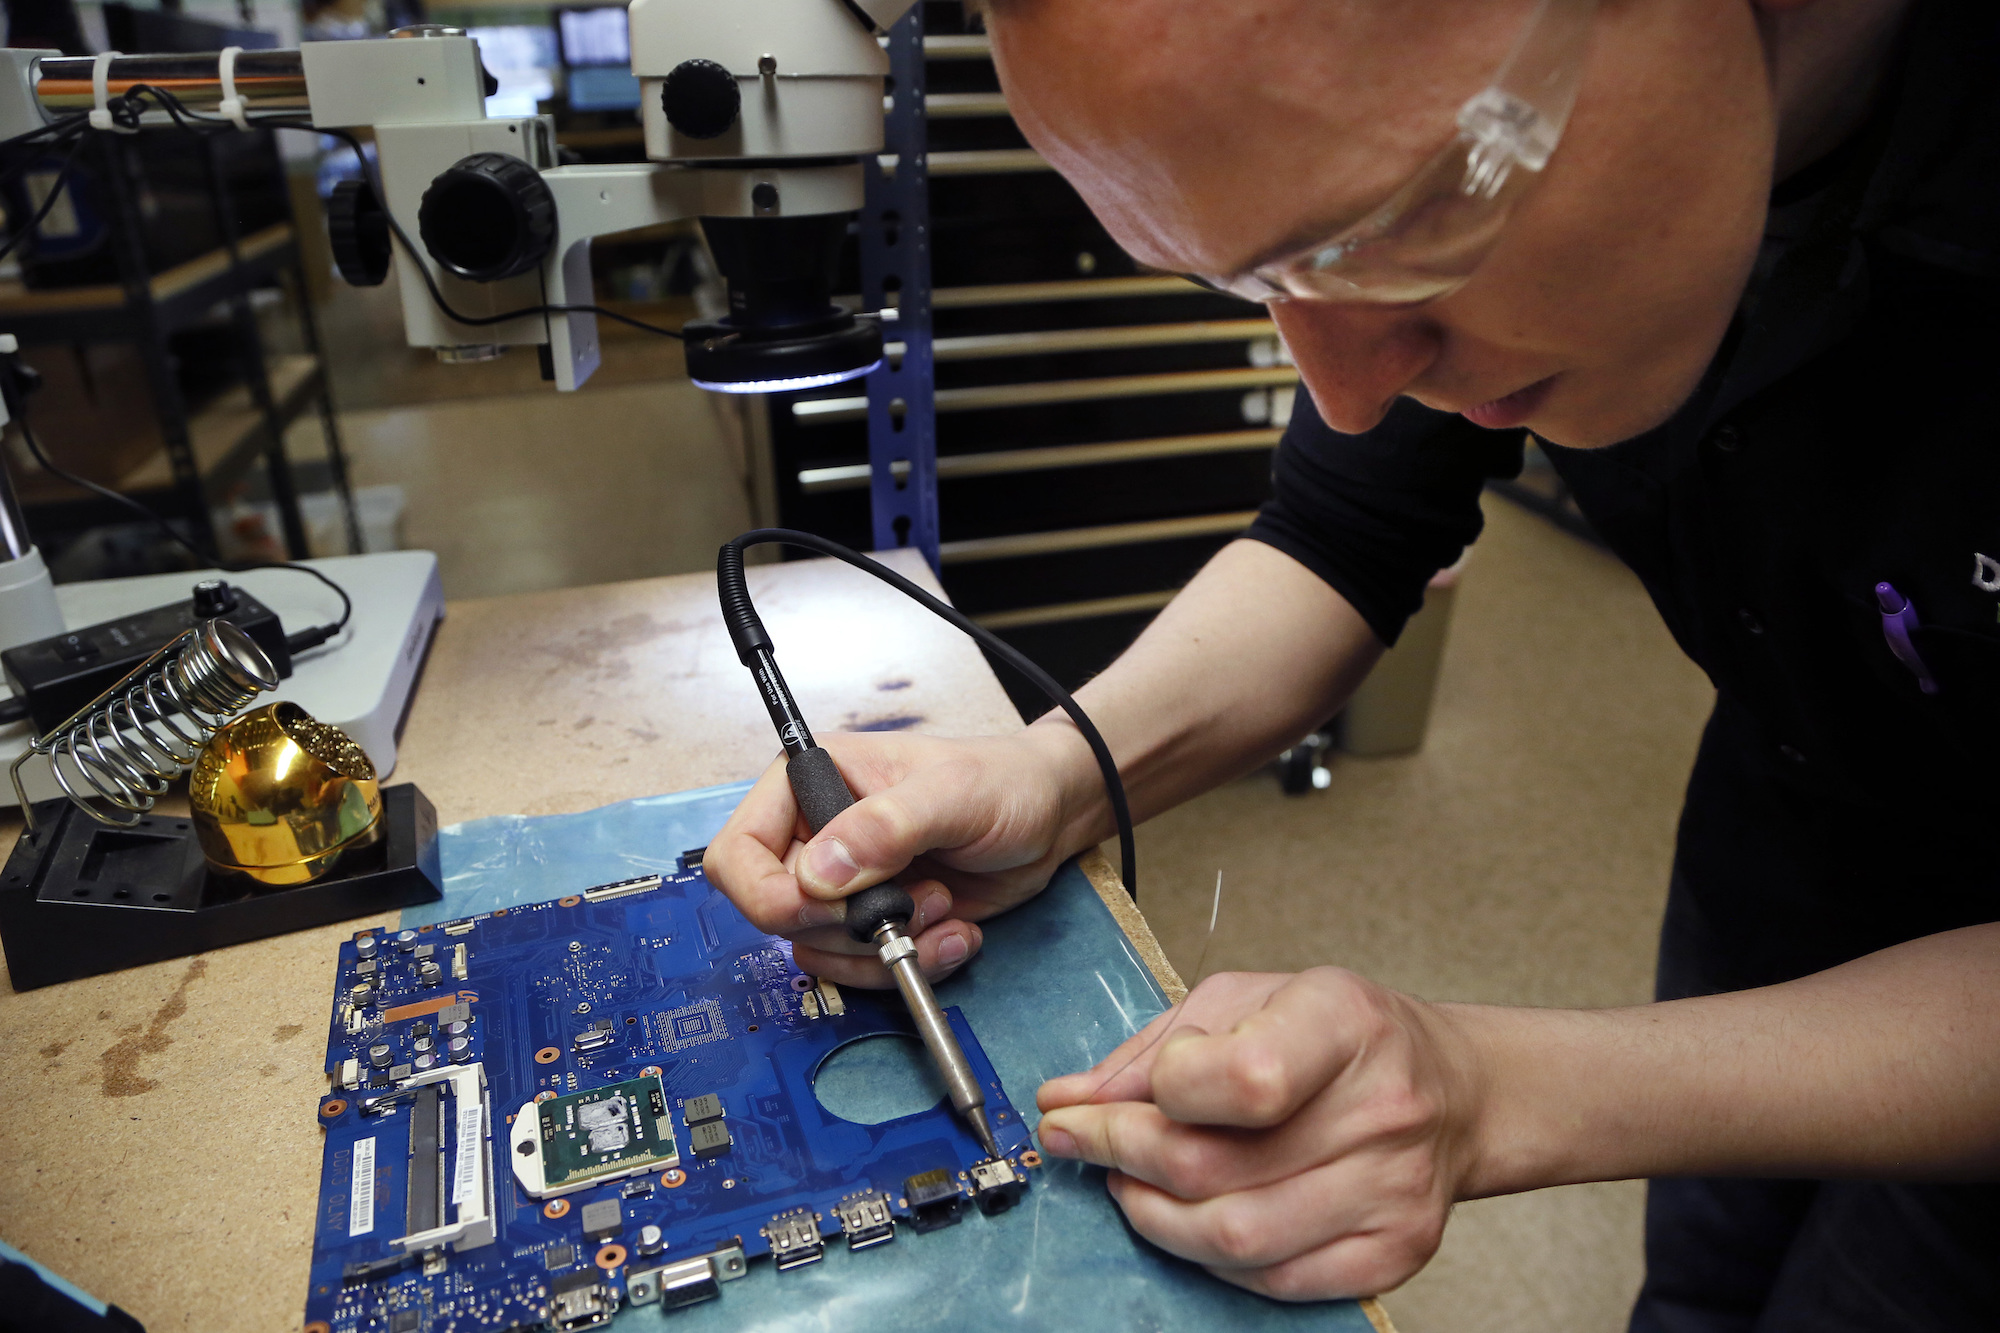 A photo of a man wearing goggles leaning over blue laptop motherboard while holding a tool